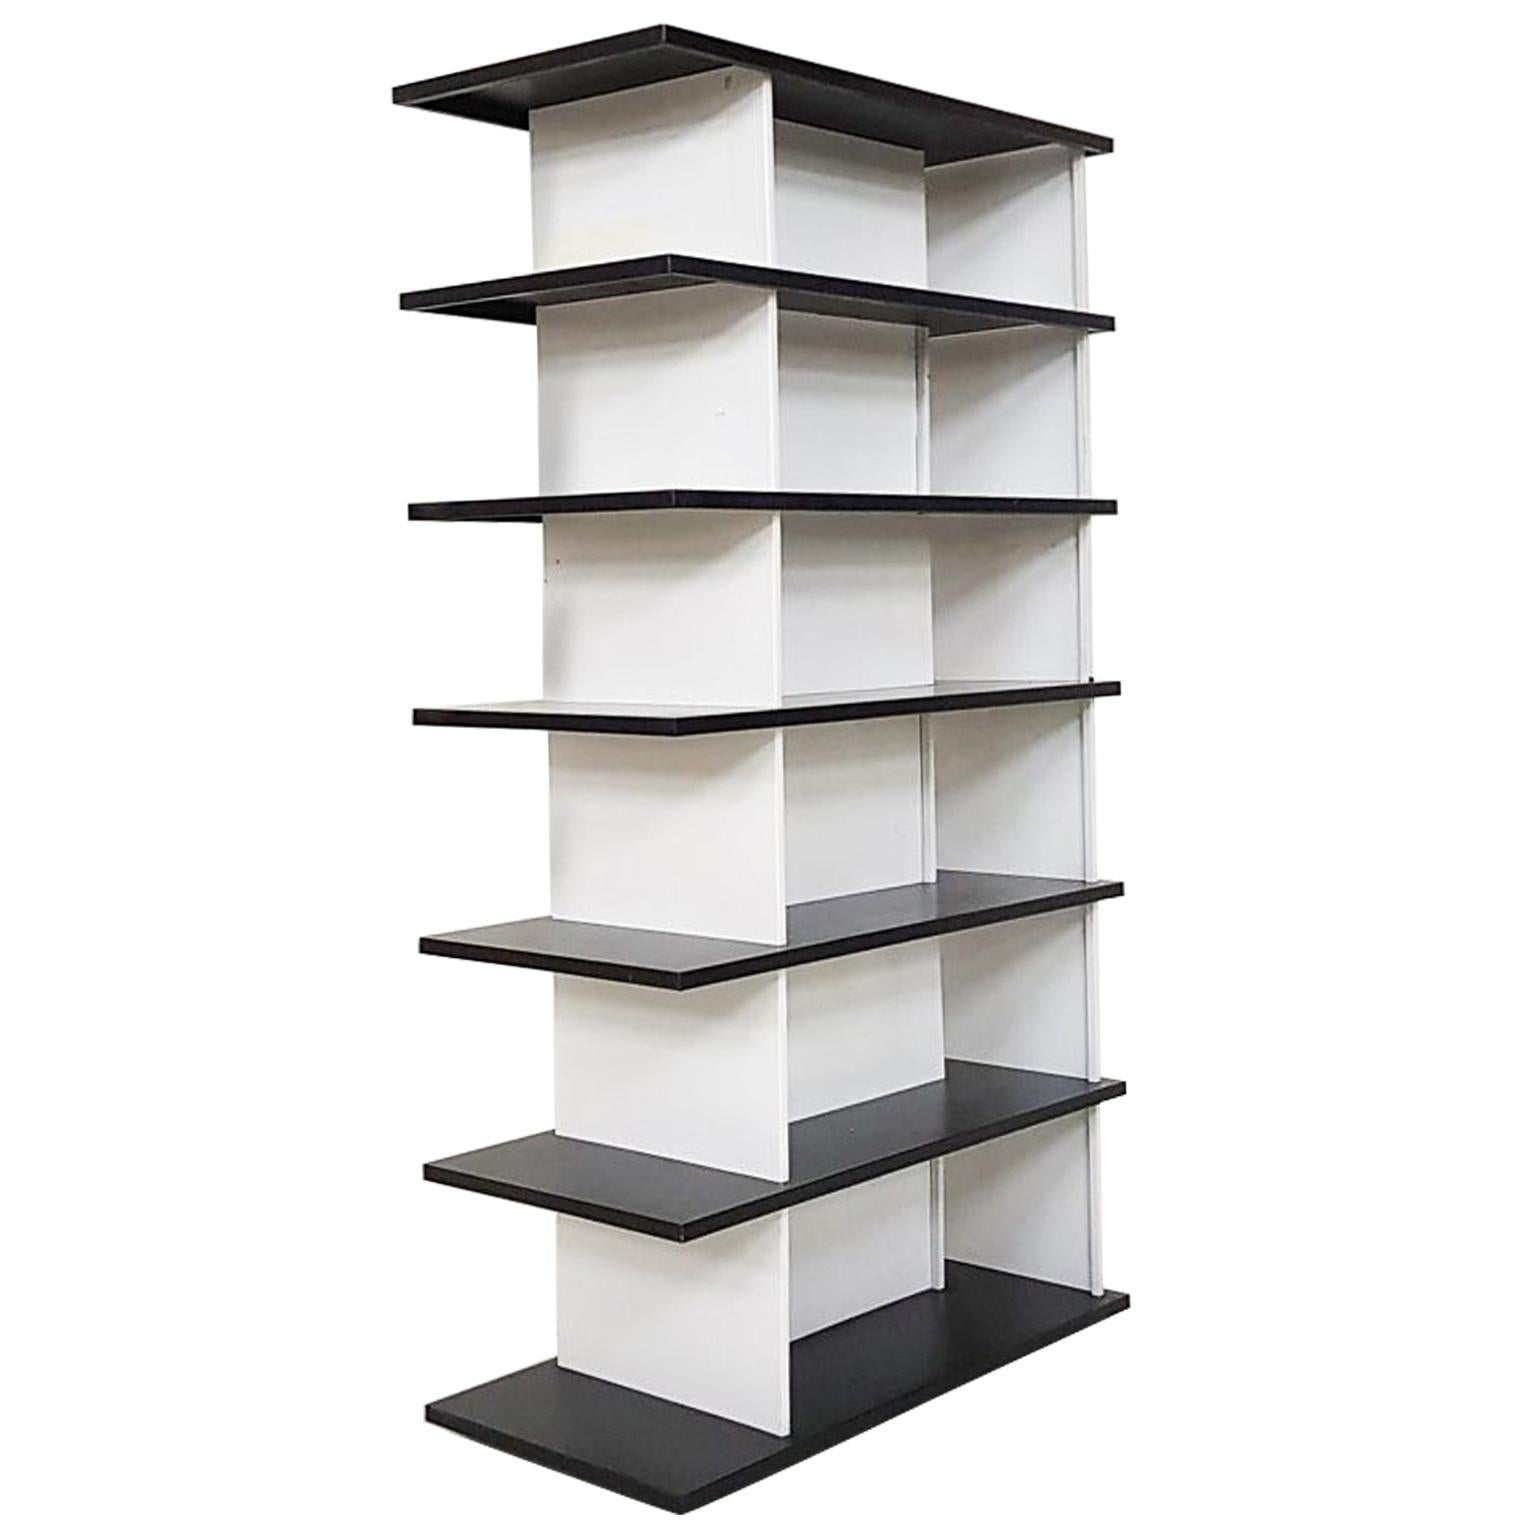 Gerrit Rietveld inspired Room Divider or Bookcase by Wim Rietveld, Dutch, 1960s